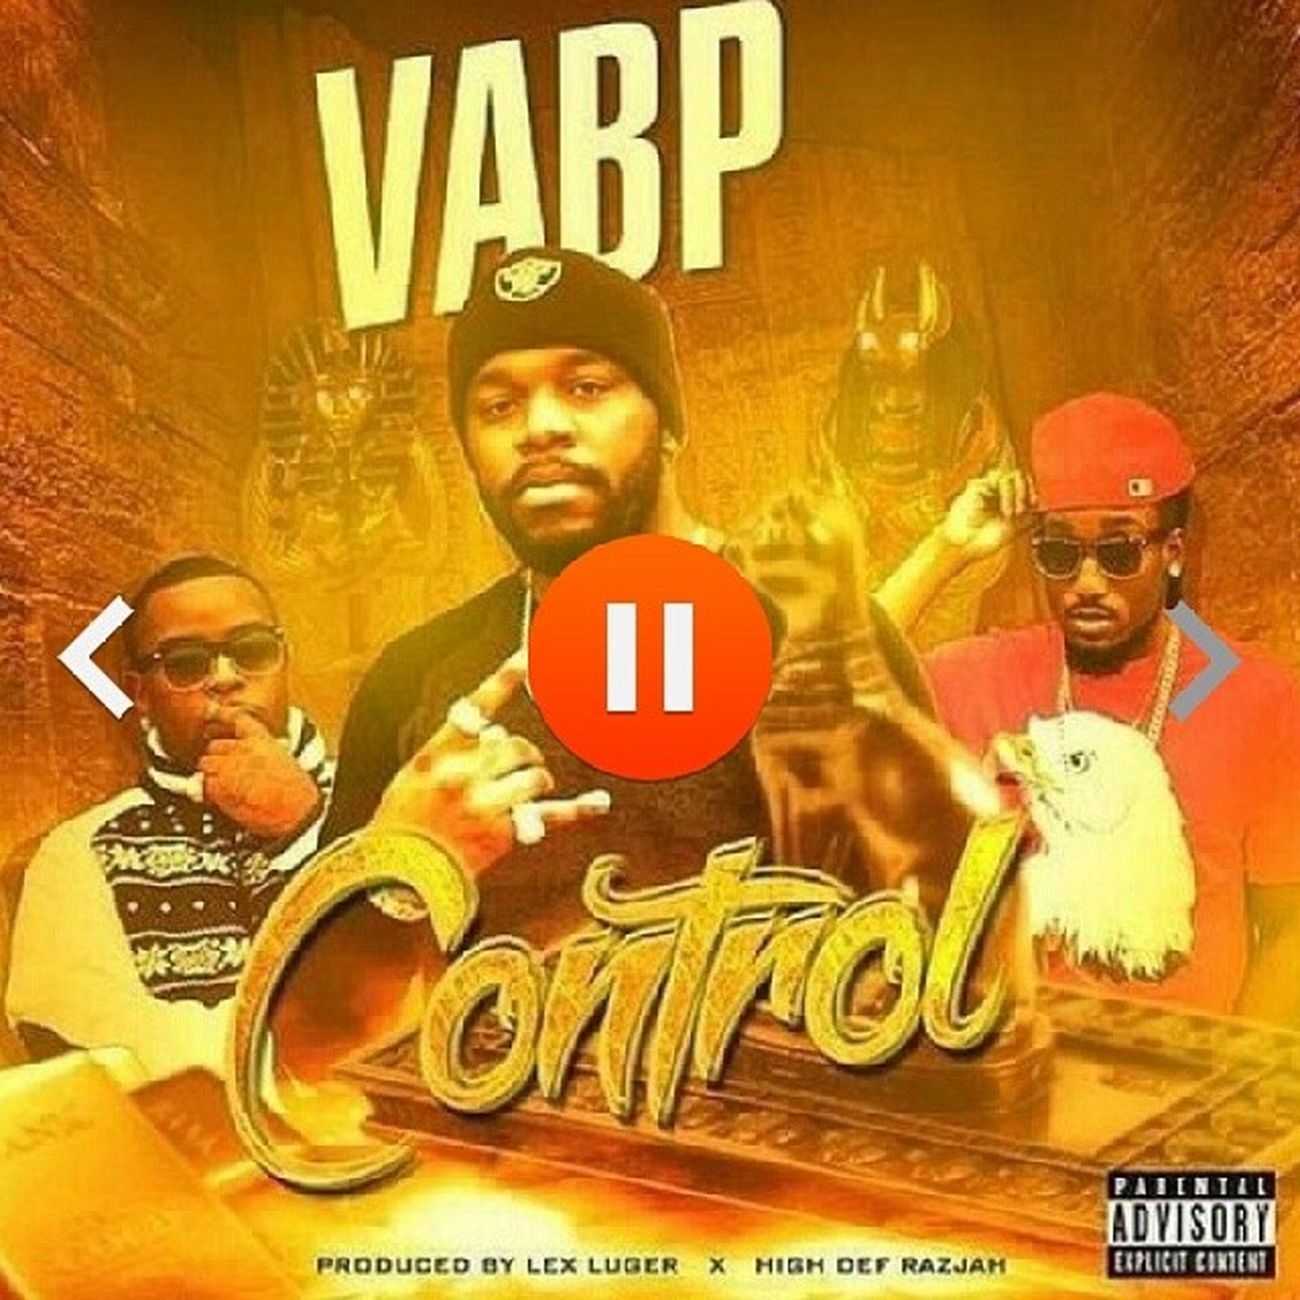 "Go Bang That New VABP-"" Control""! Produced By Lex Luger X HighDefRazjah Shxts Fire. https://m.soundcloud.com/hitmakervic/control?utm_source=soundcloud&utm_campaign=share&utm_medium=twitter VABP INKBOYZ Gwapstar Tdc studiolife music rap beats hardworking hiphop motivation instrumentals bars Classic Artist YoungNiggaz Theavebyslim"